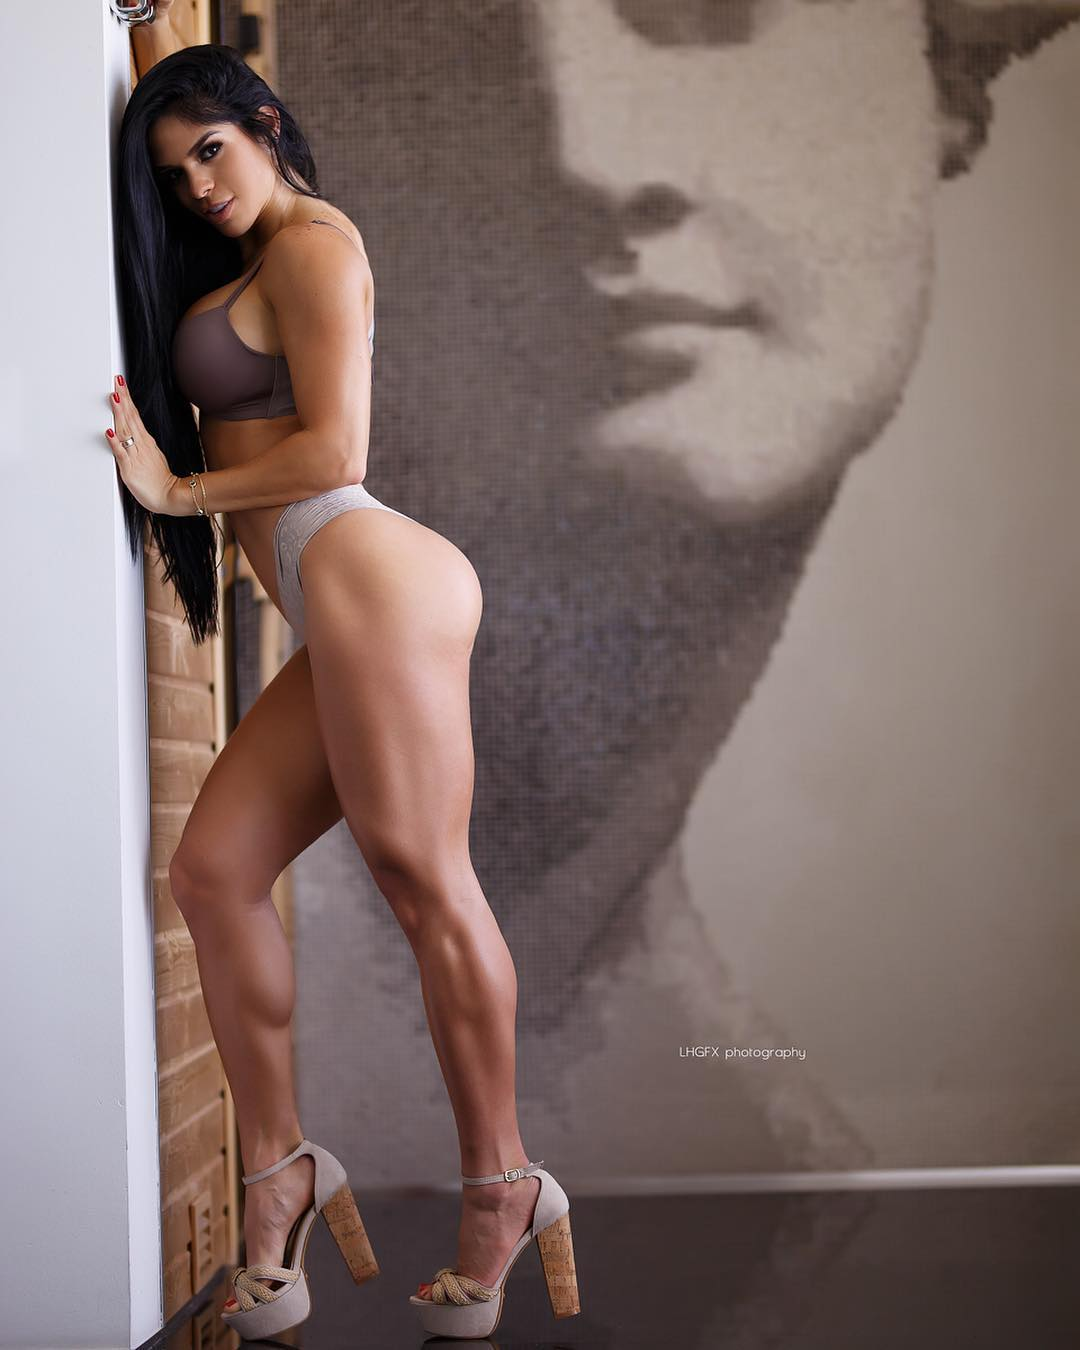 Pictures Michelle Lewin nudes (85 photo), Topless, Fappening, Boobs, legs 2015